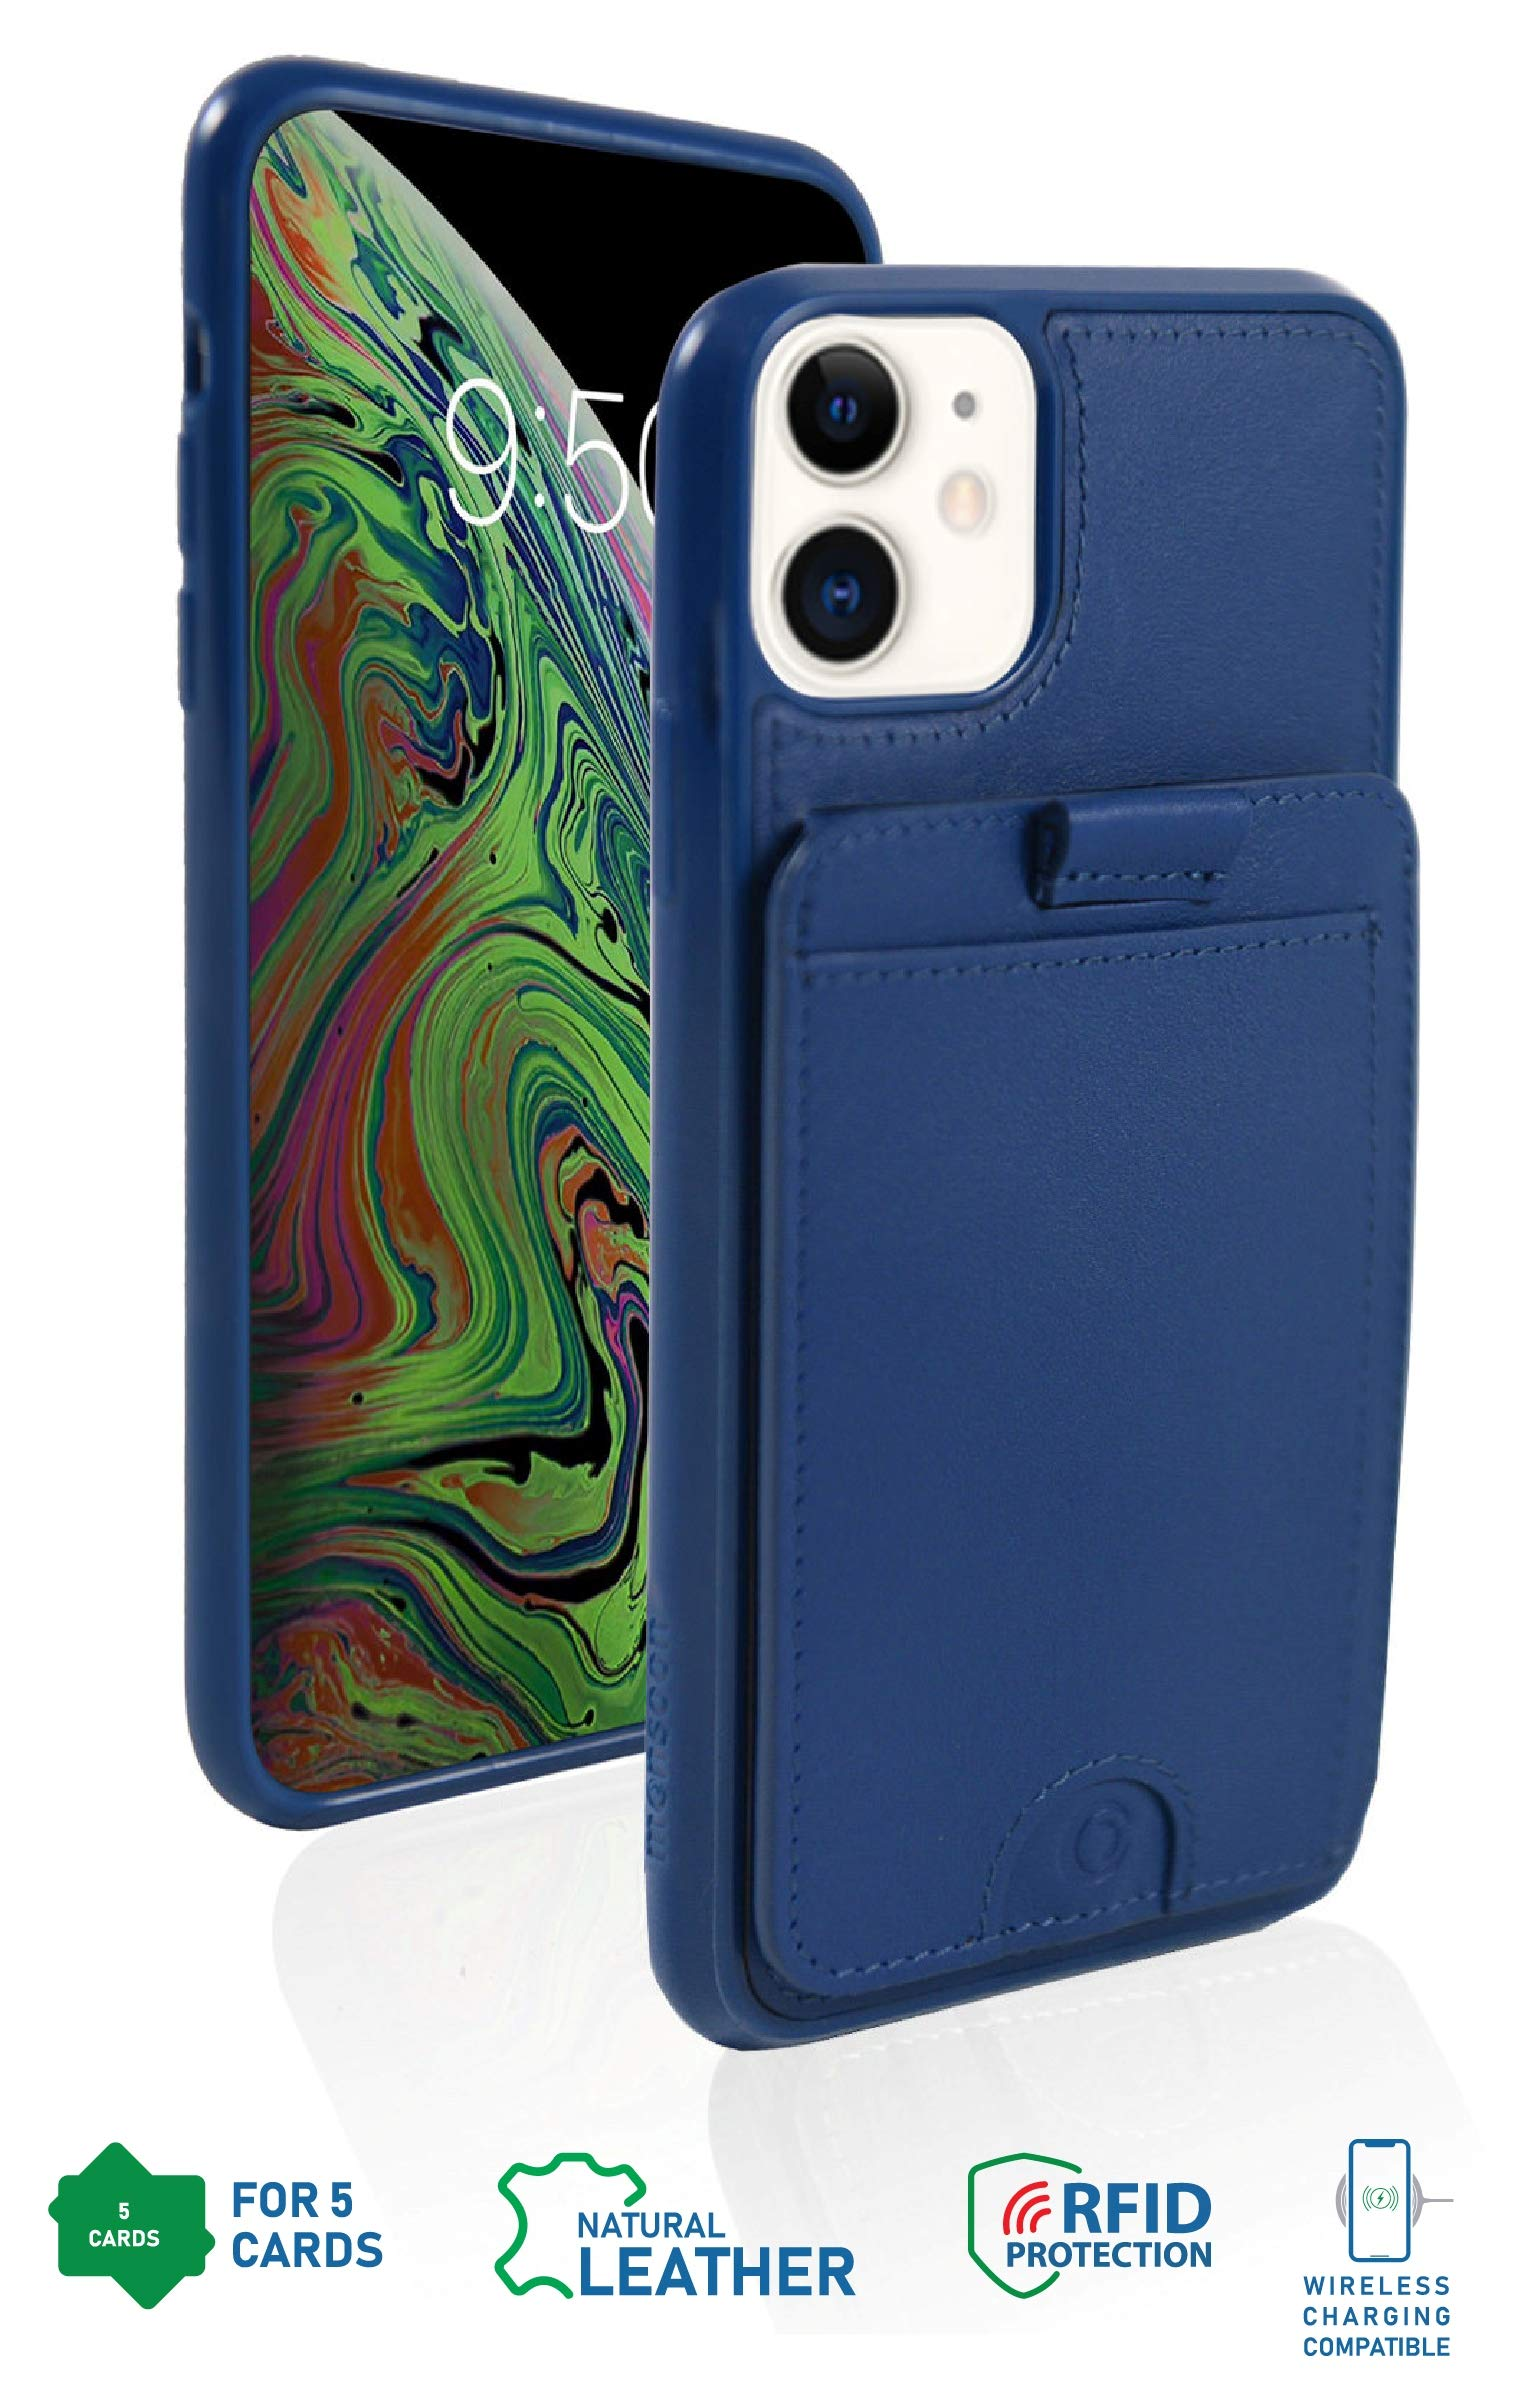 monsoon [Cruiser] Genuine Leather Wallet Case with Removable Slim Wallet for iPhone 11 - Holds 5 Cards   RFID   Stand   Wireless Charging OR Magnetic Car Mount Compatible - Blue